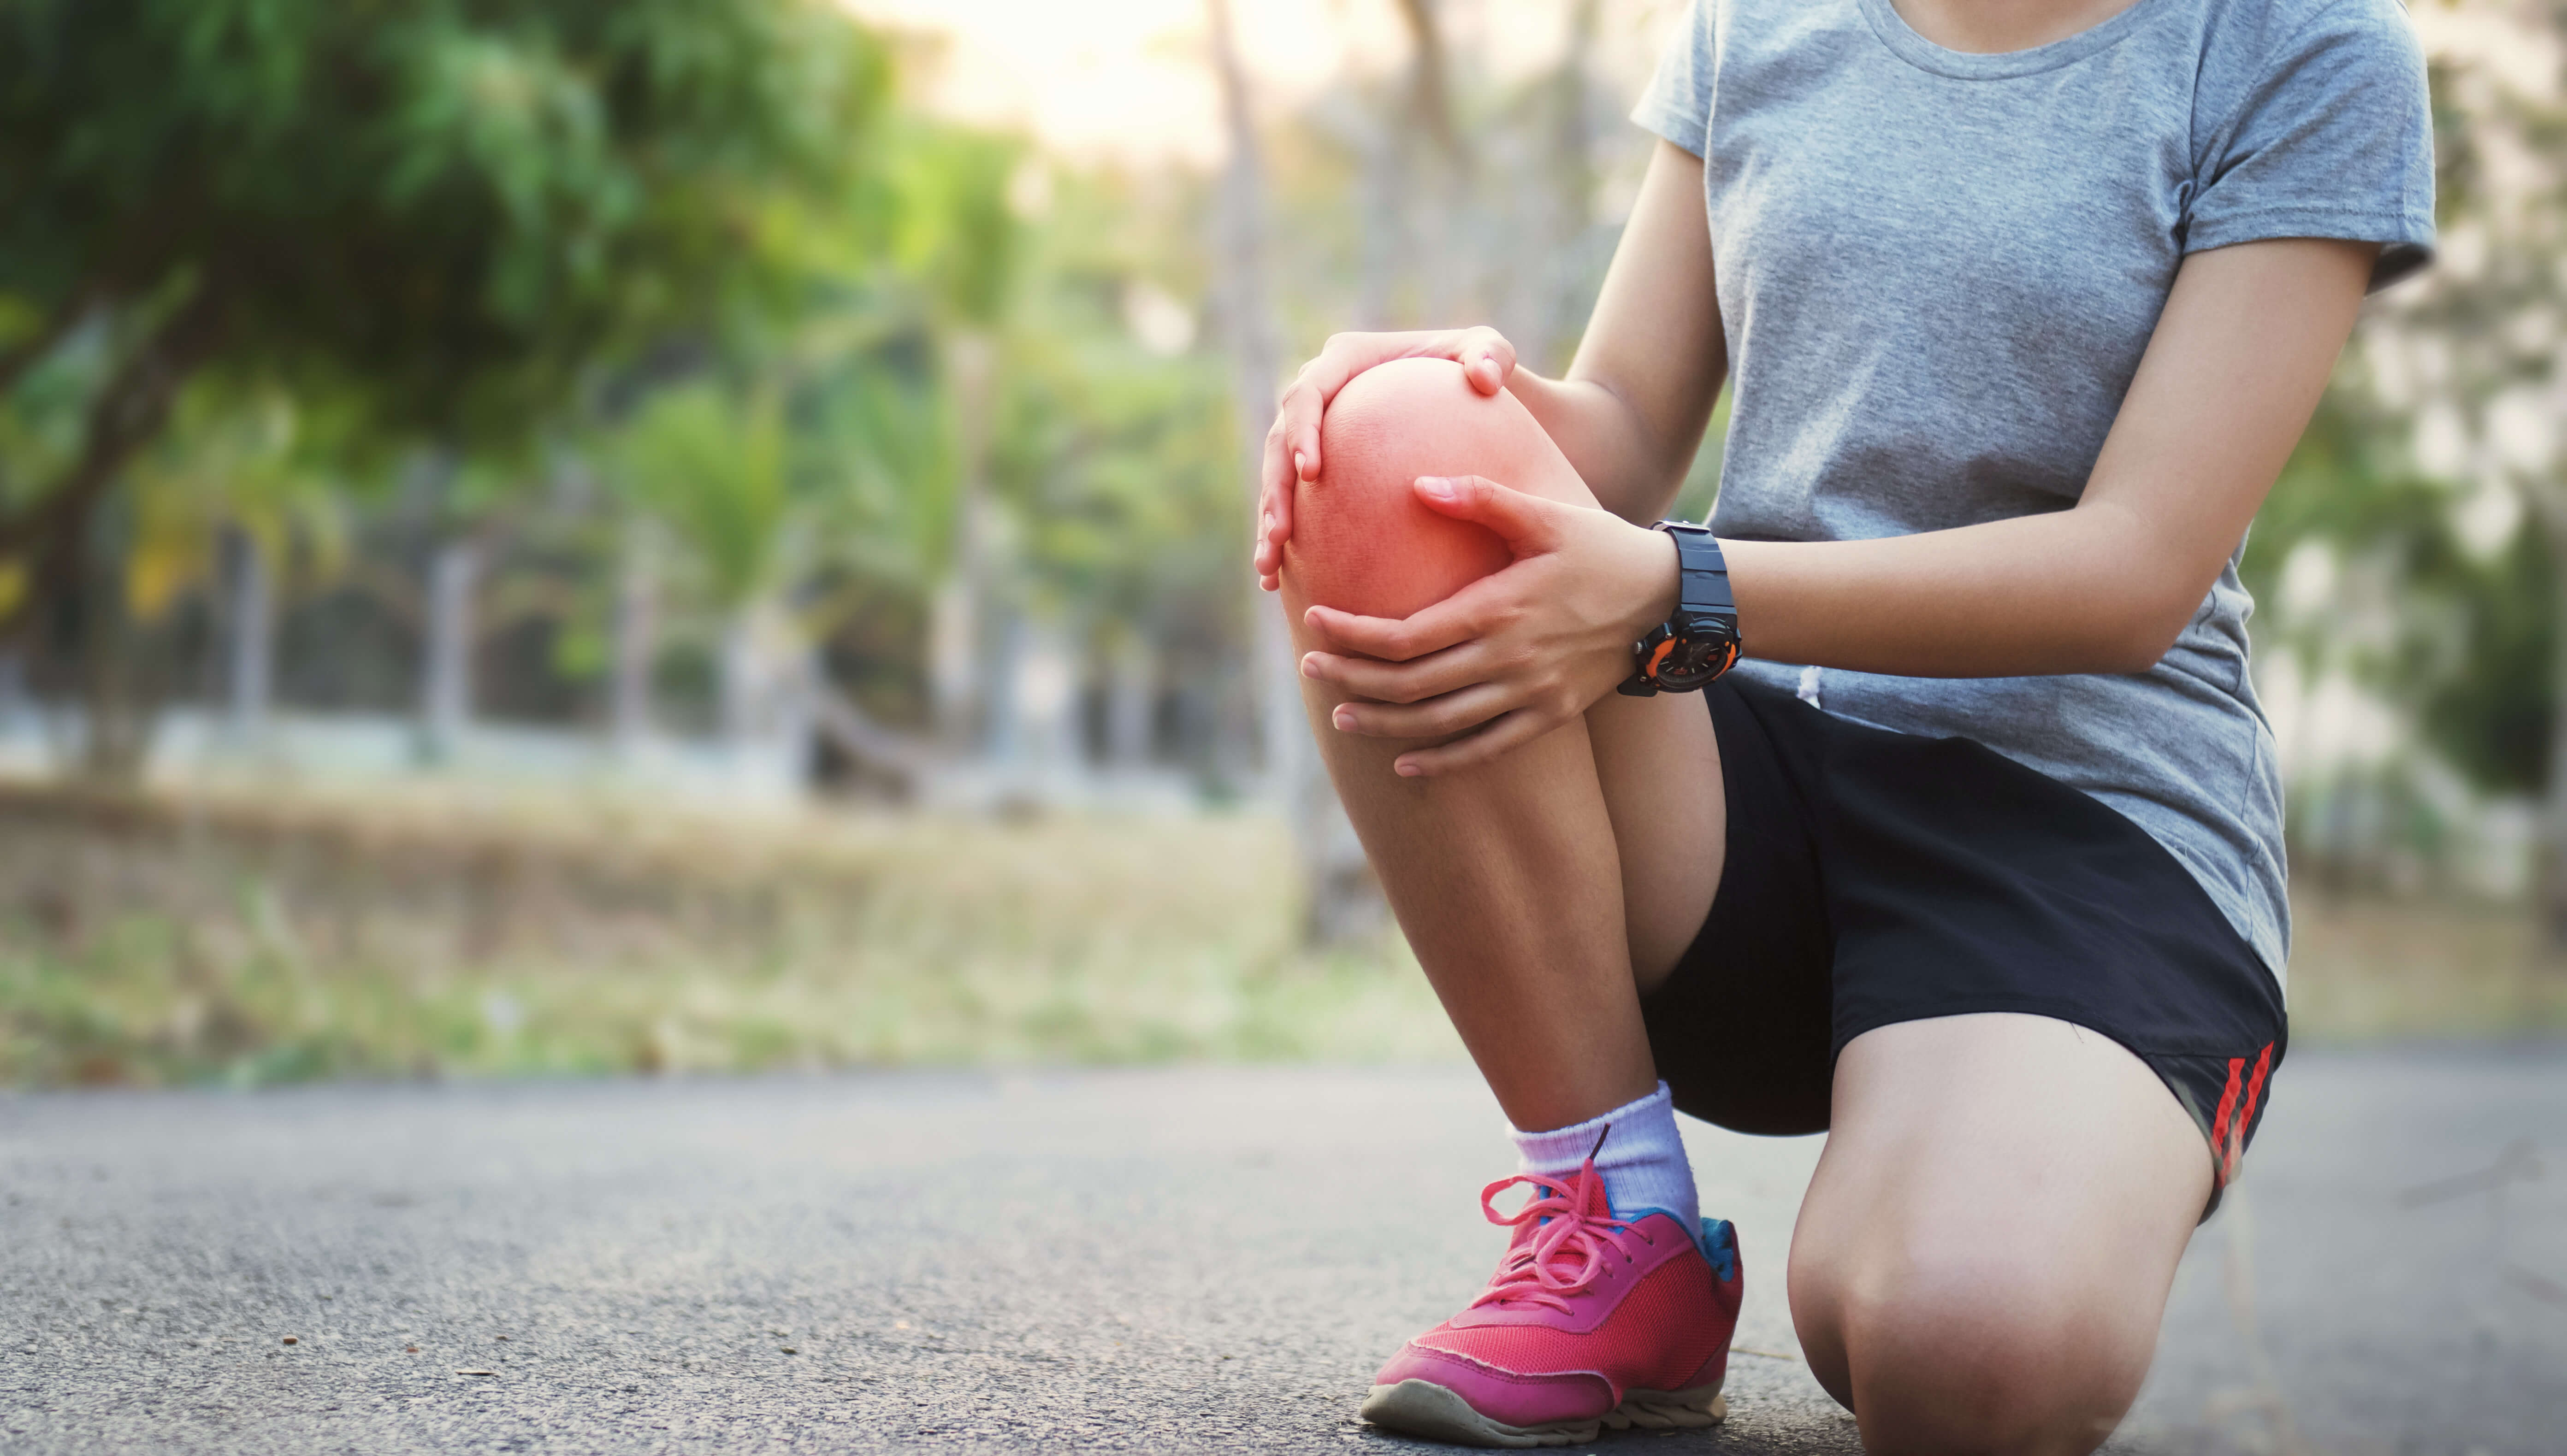 Significance of a hyperextended knee